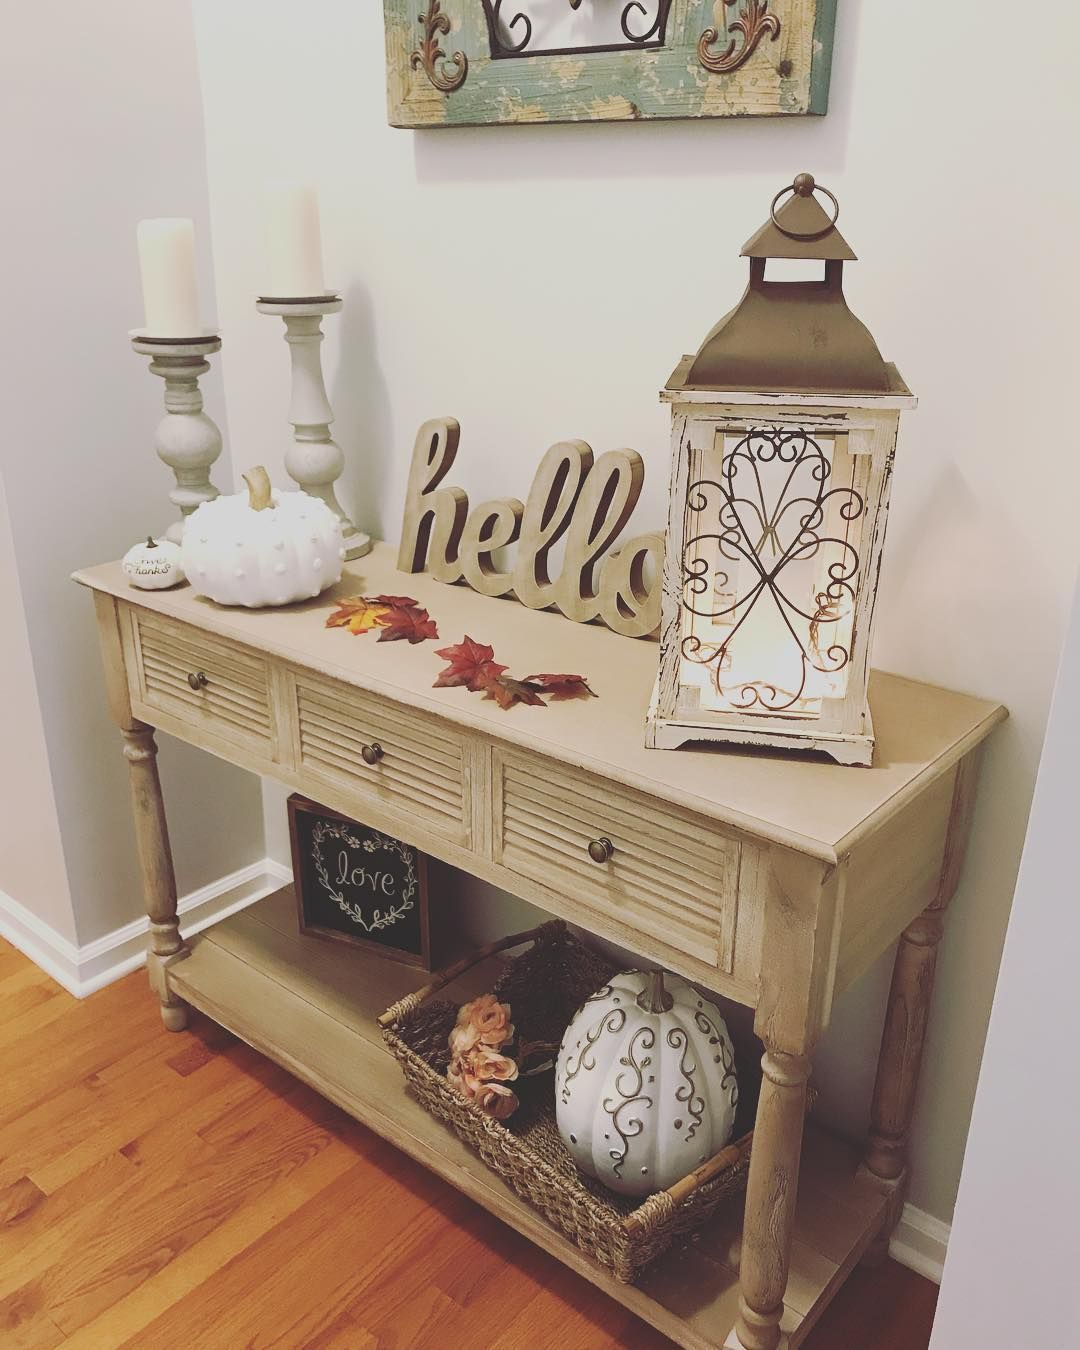 32 Incredibly Chic Fall Decor Items You Won 39 T Believe Are From Homegoods Home Goods Decor Cozy Fall Decor Decor